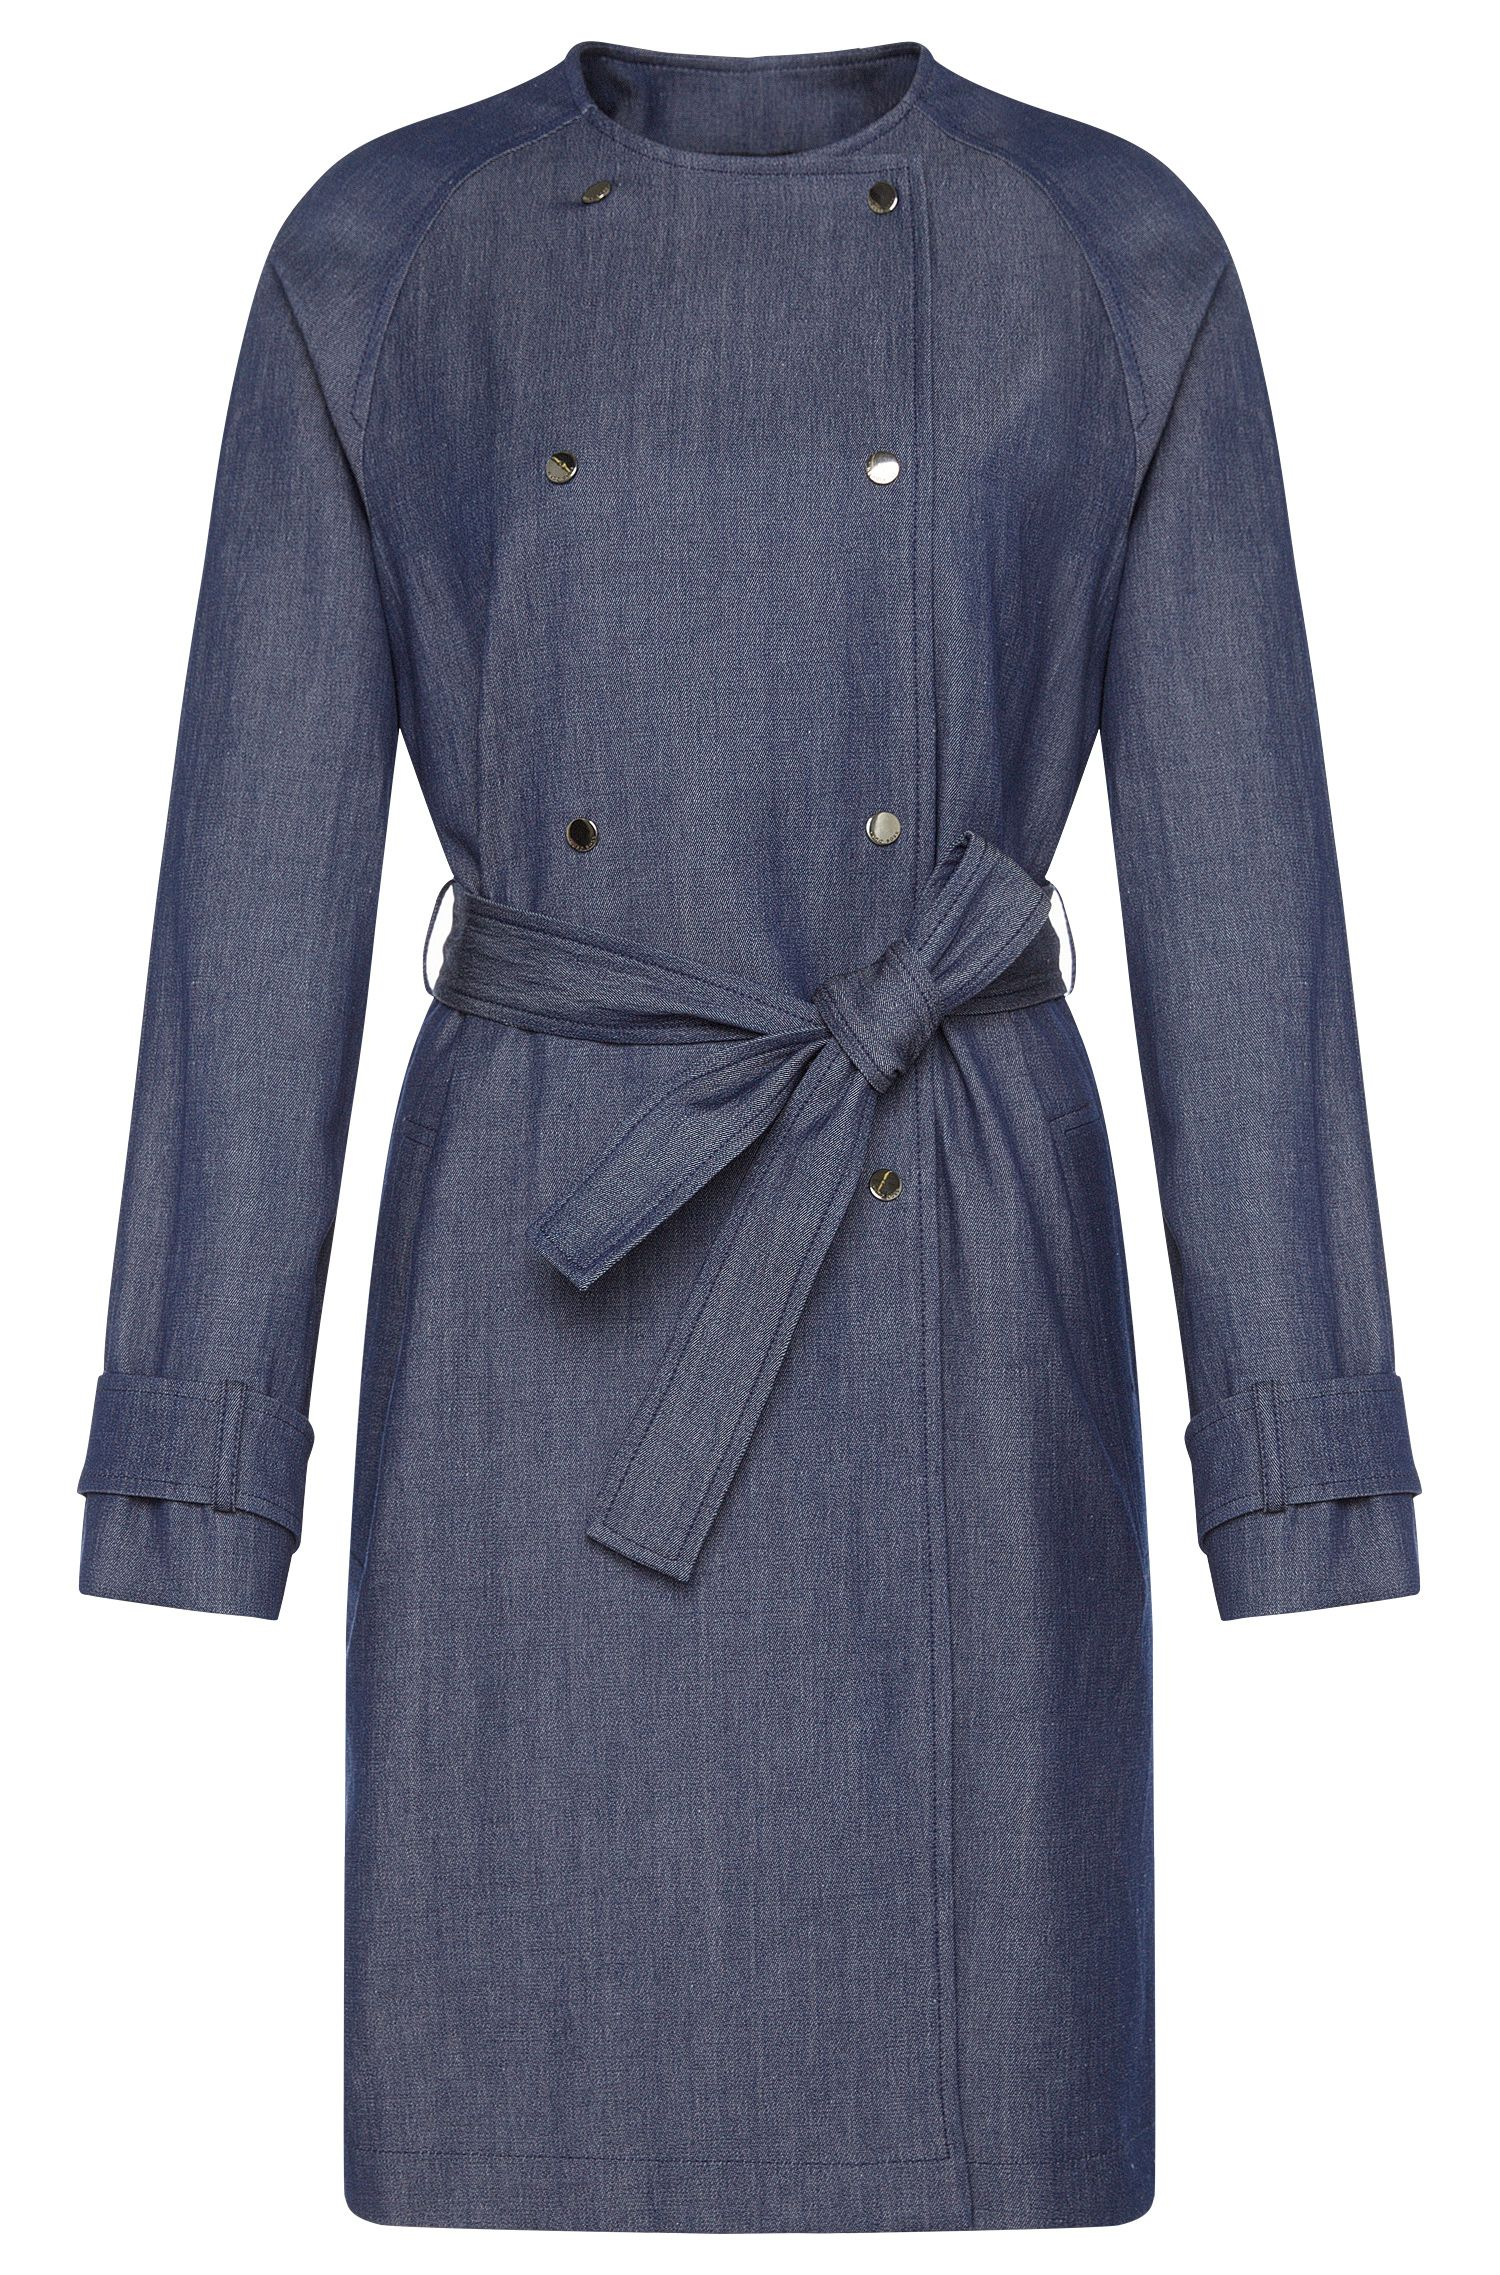 'Calrehna' | Stretch Virgin Wool Linen Cotton Denim Trench Coat